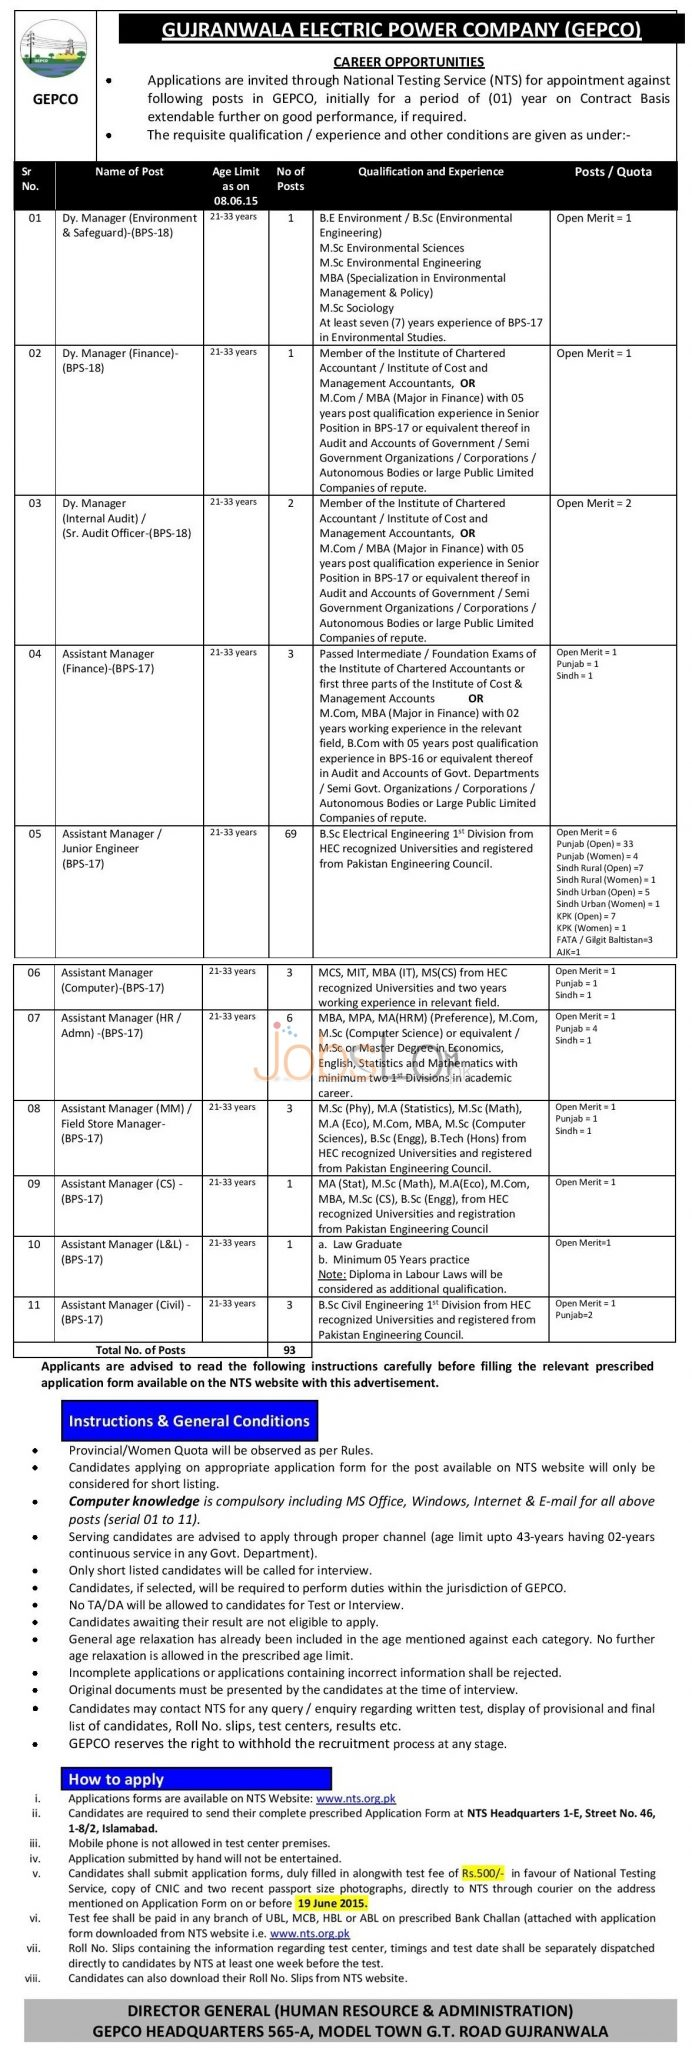 GEPCO WAPDA NTS Jobs 2015 May 28 Advertisement